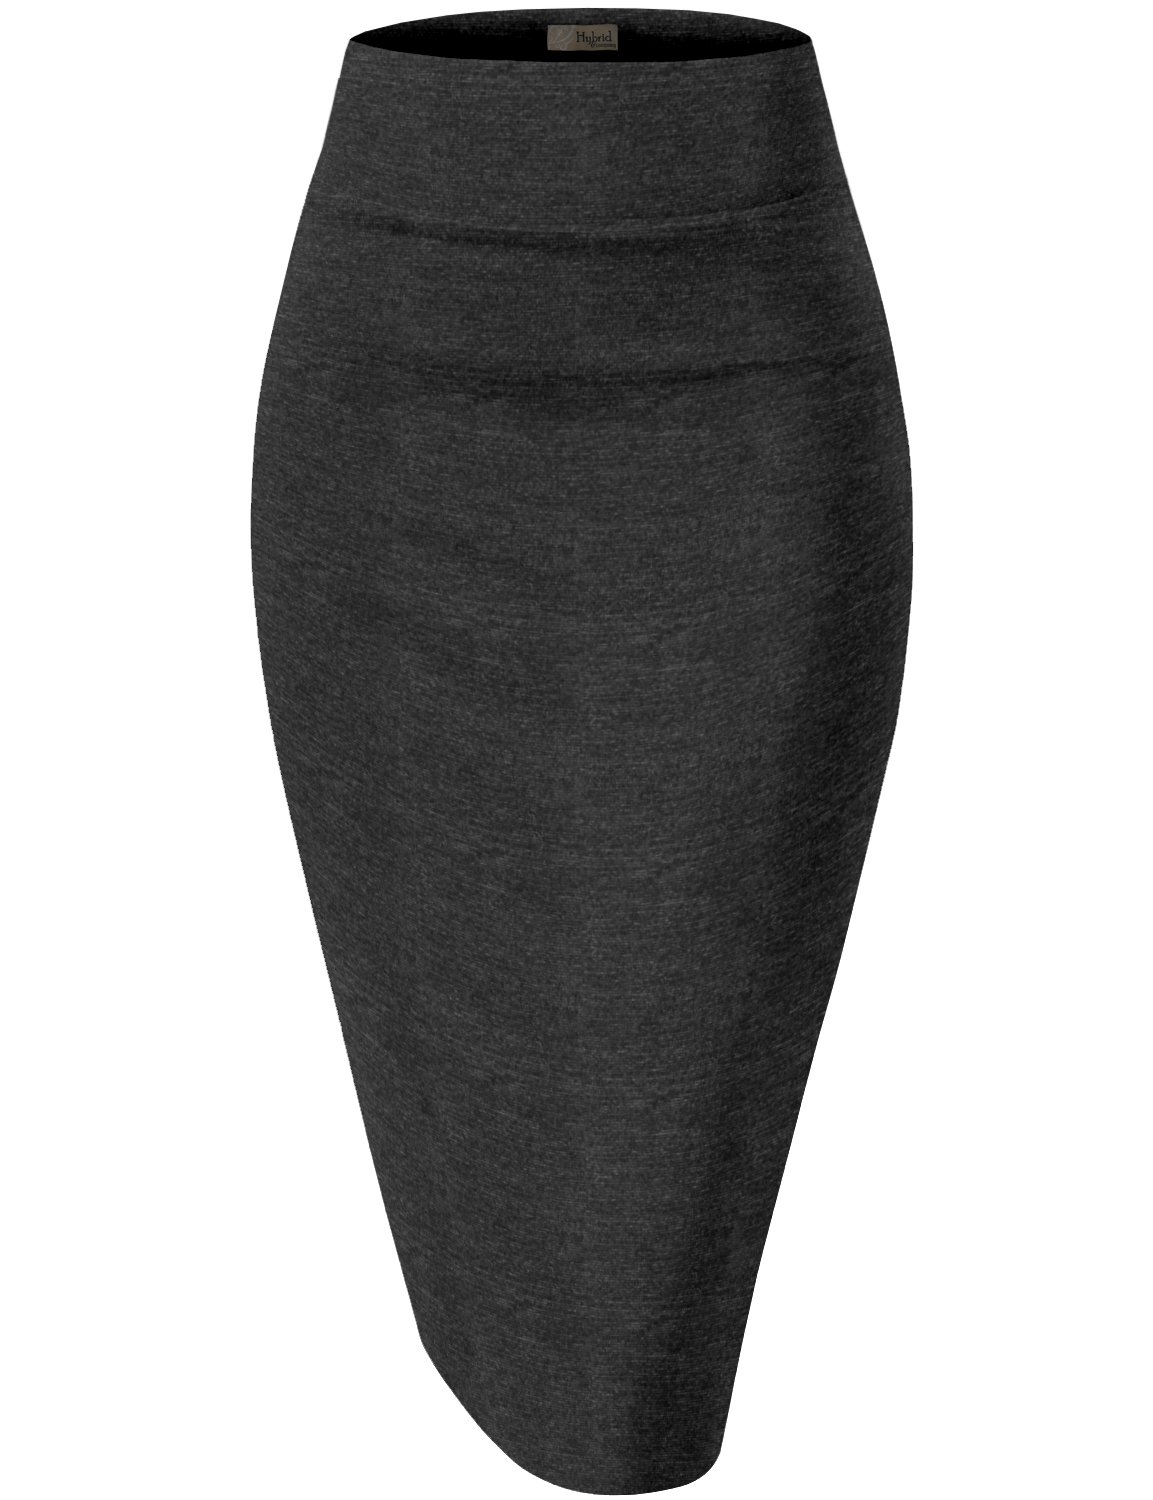 HyBrid & Company Womens Premium Stretch Office Pencil Skirt KSK45002 Charcoal Medium